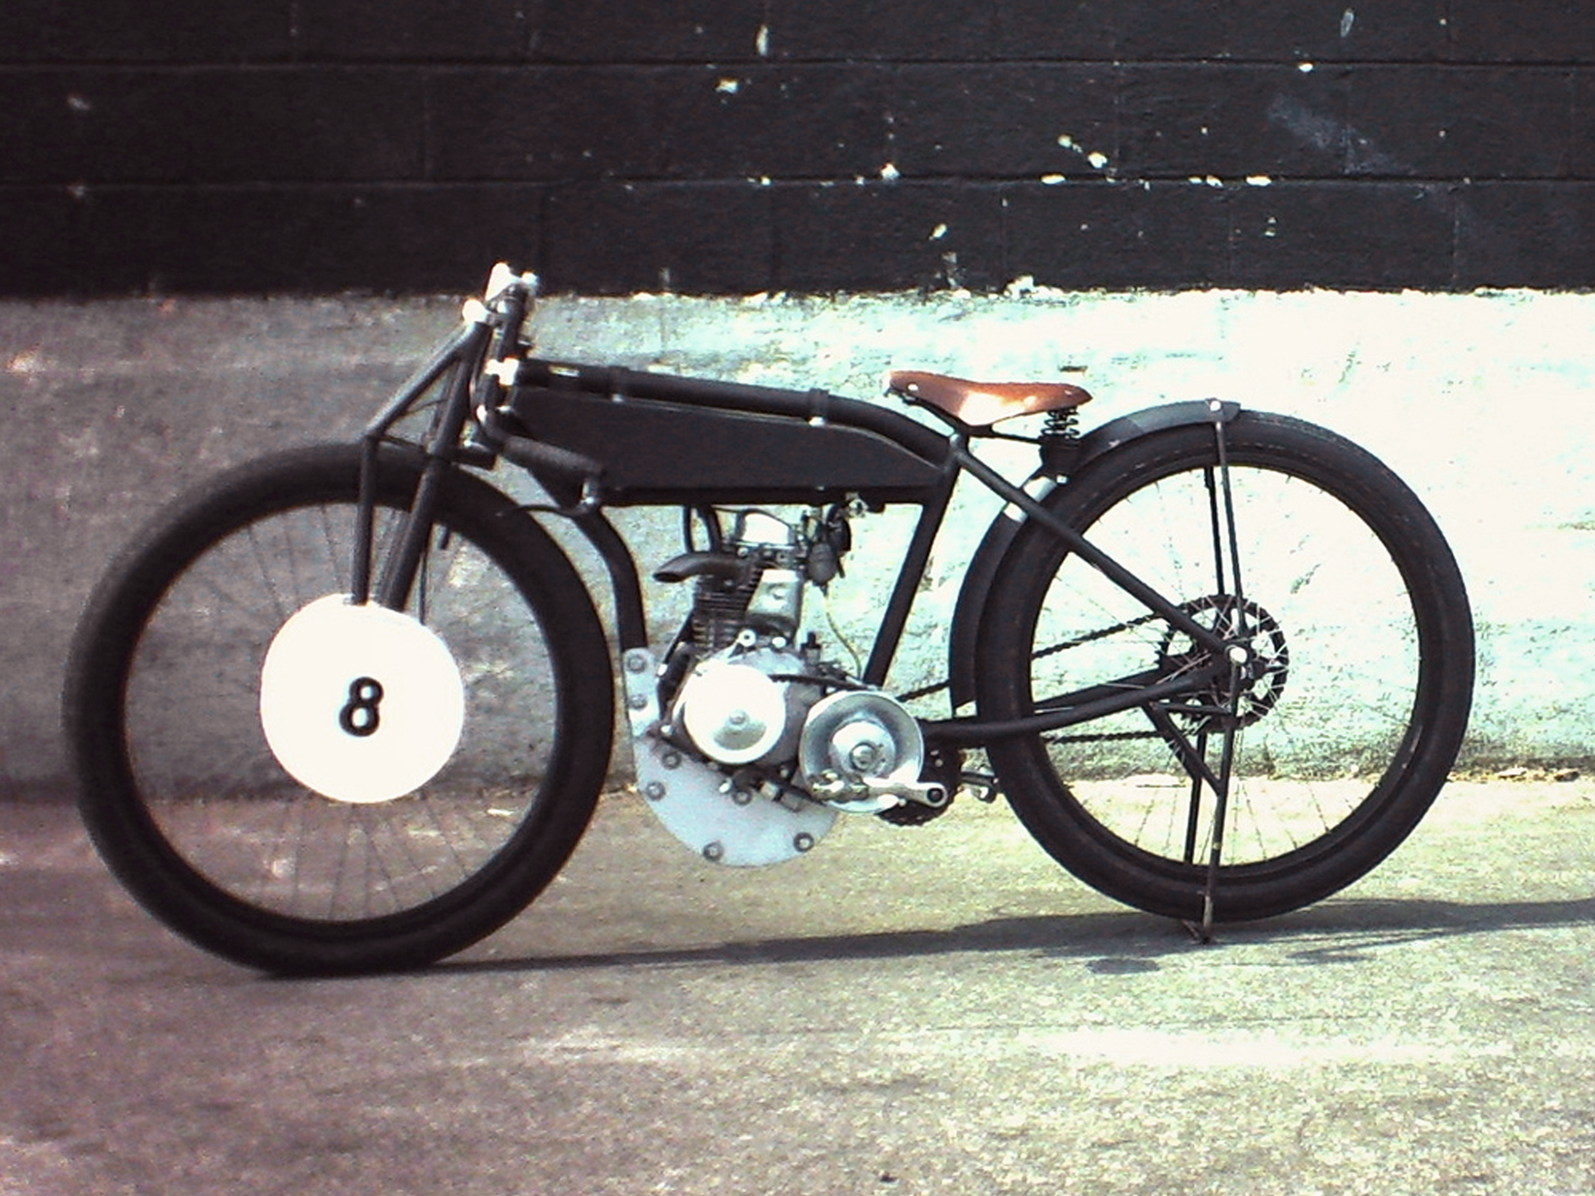 200cc Flat Track - 1920's flat track racer tribute. Powered by a Honda gx200 clone with a Comet 30 series CVT